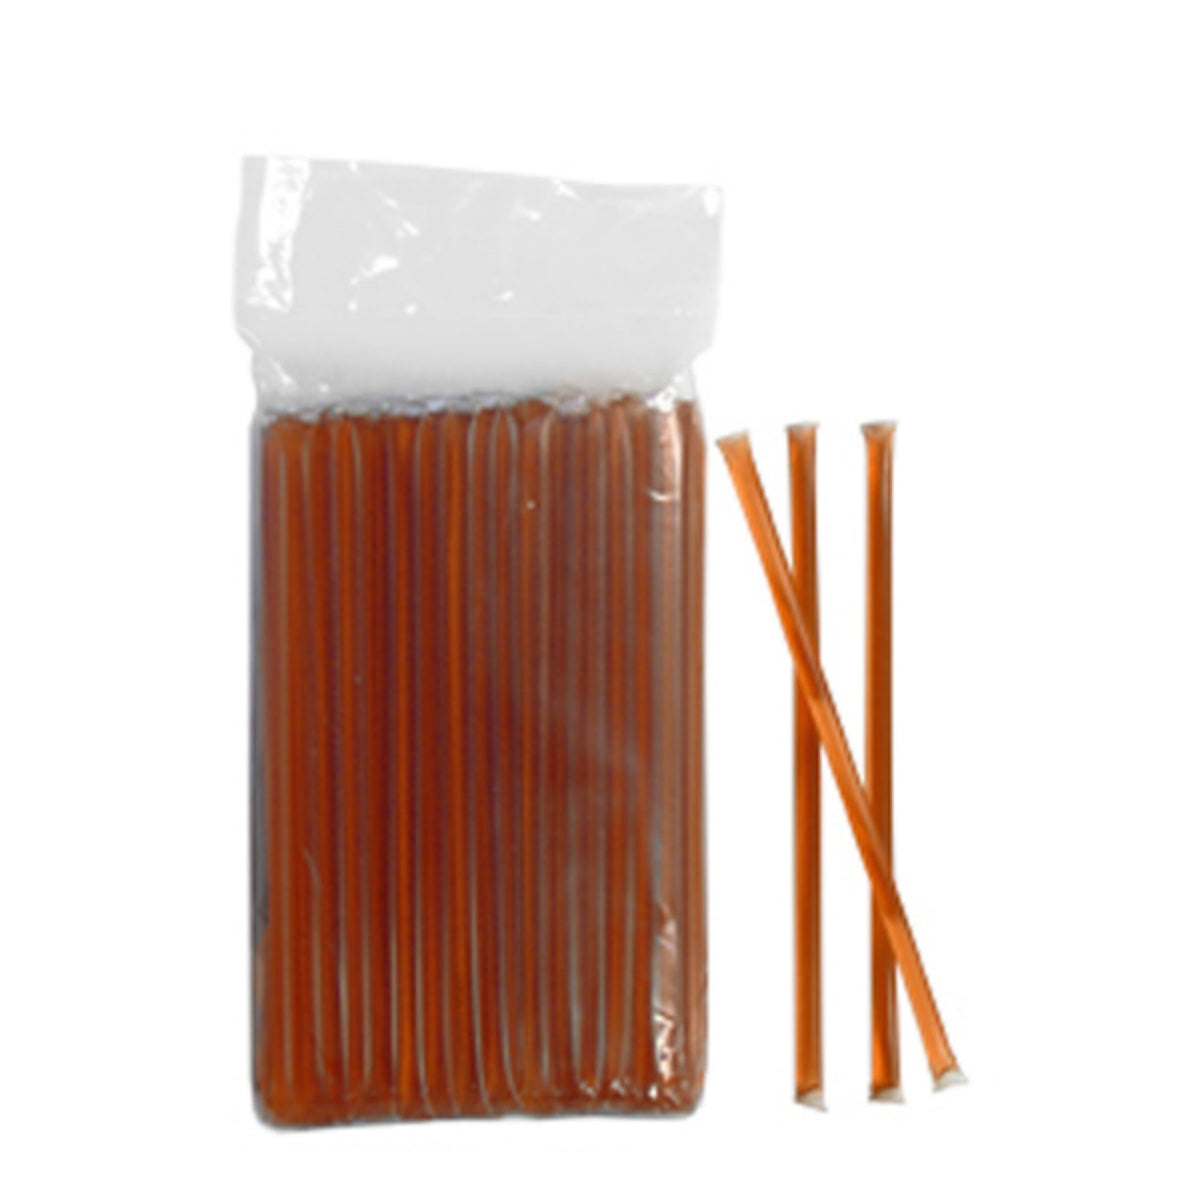 Anna's Sweet Peach Flavored Honey Sticks in a Large Bulk Pack of 100